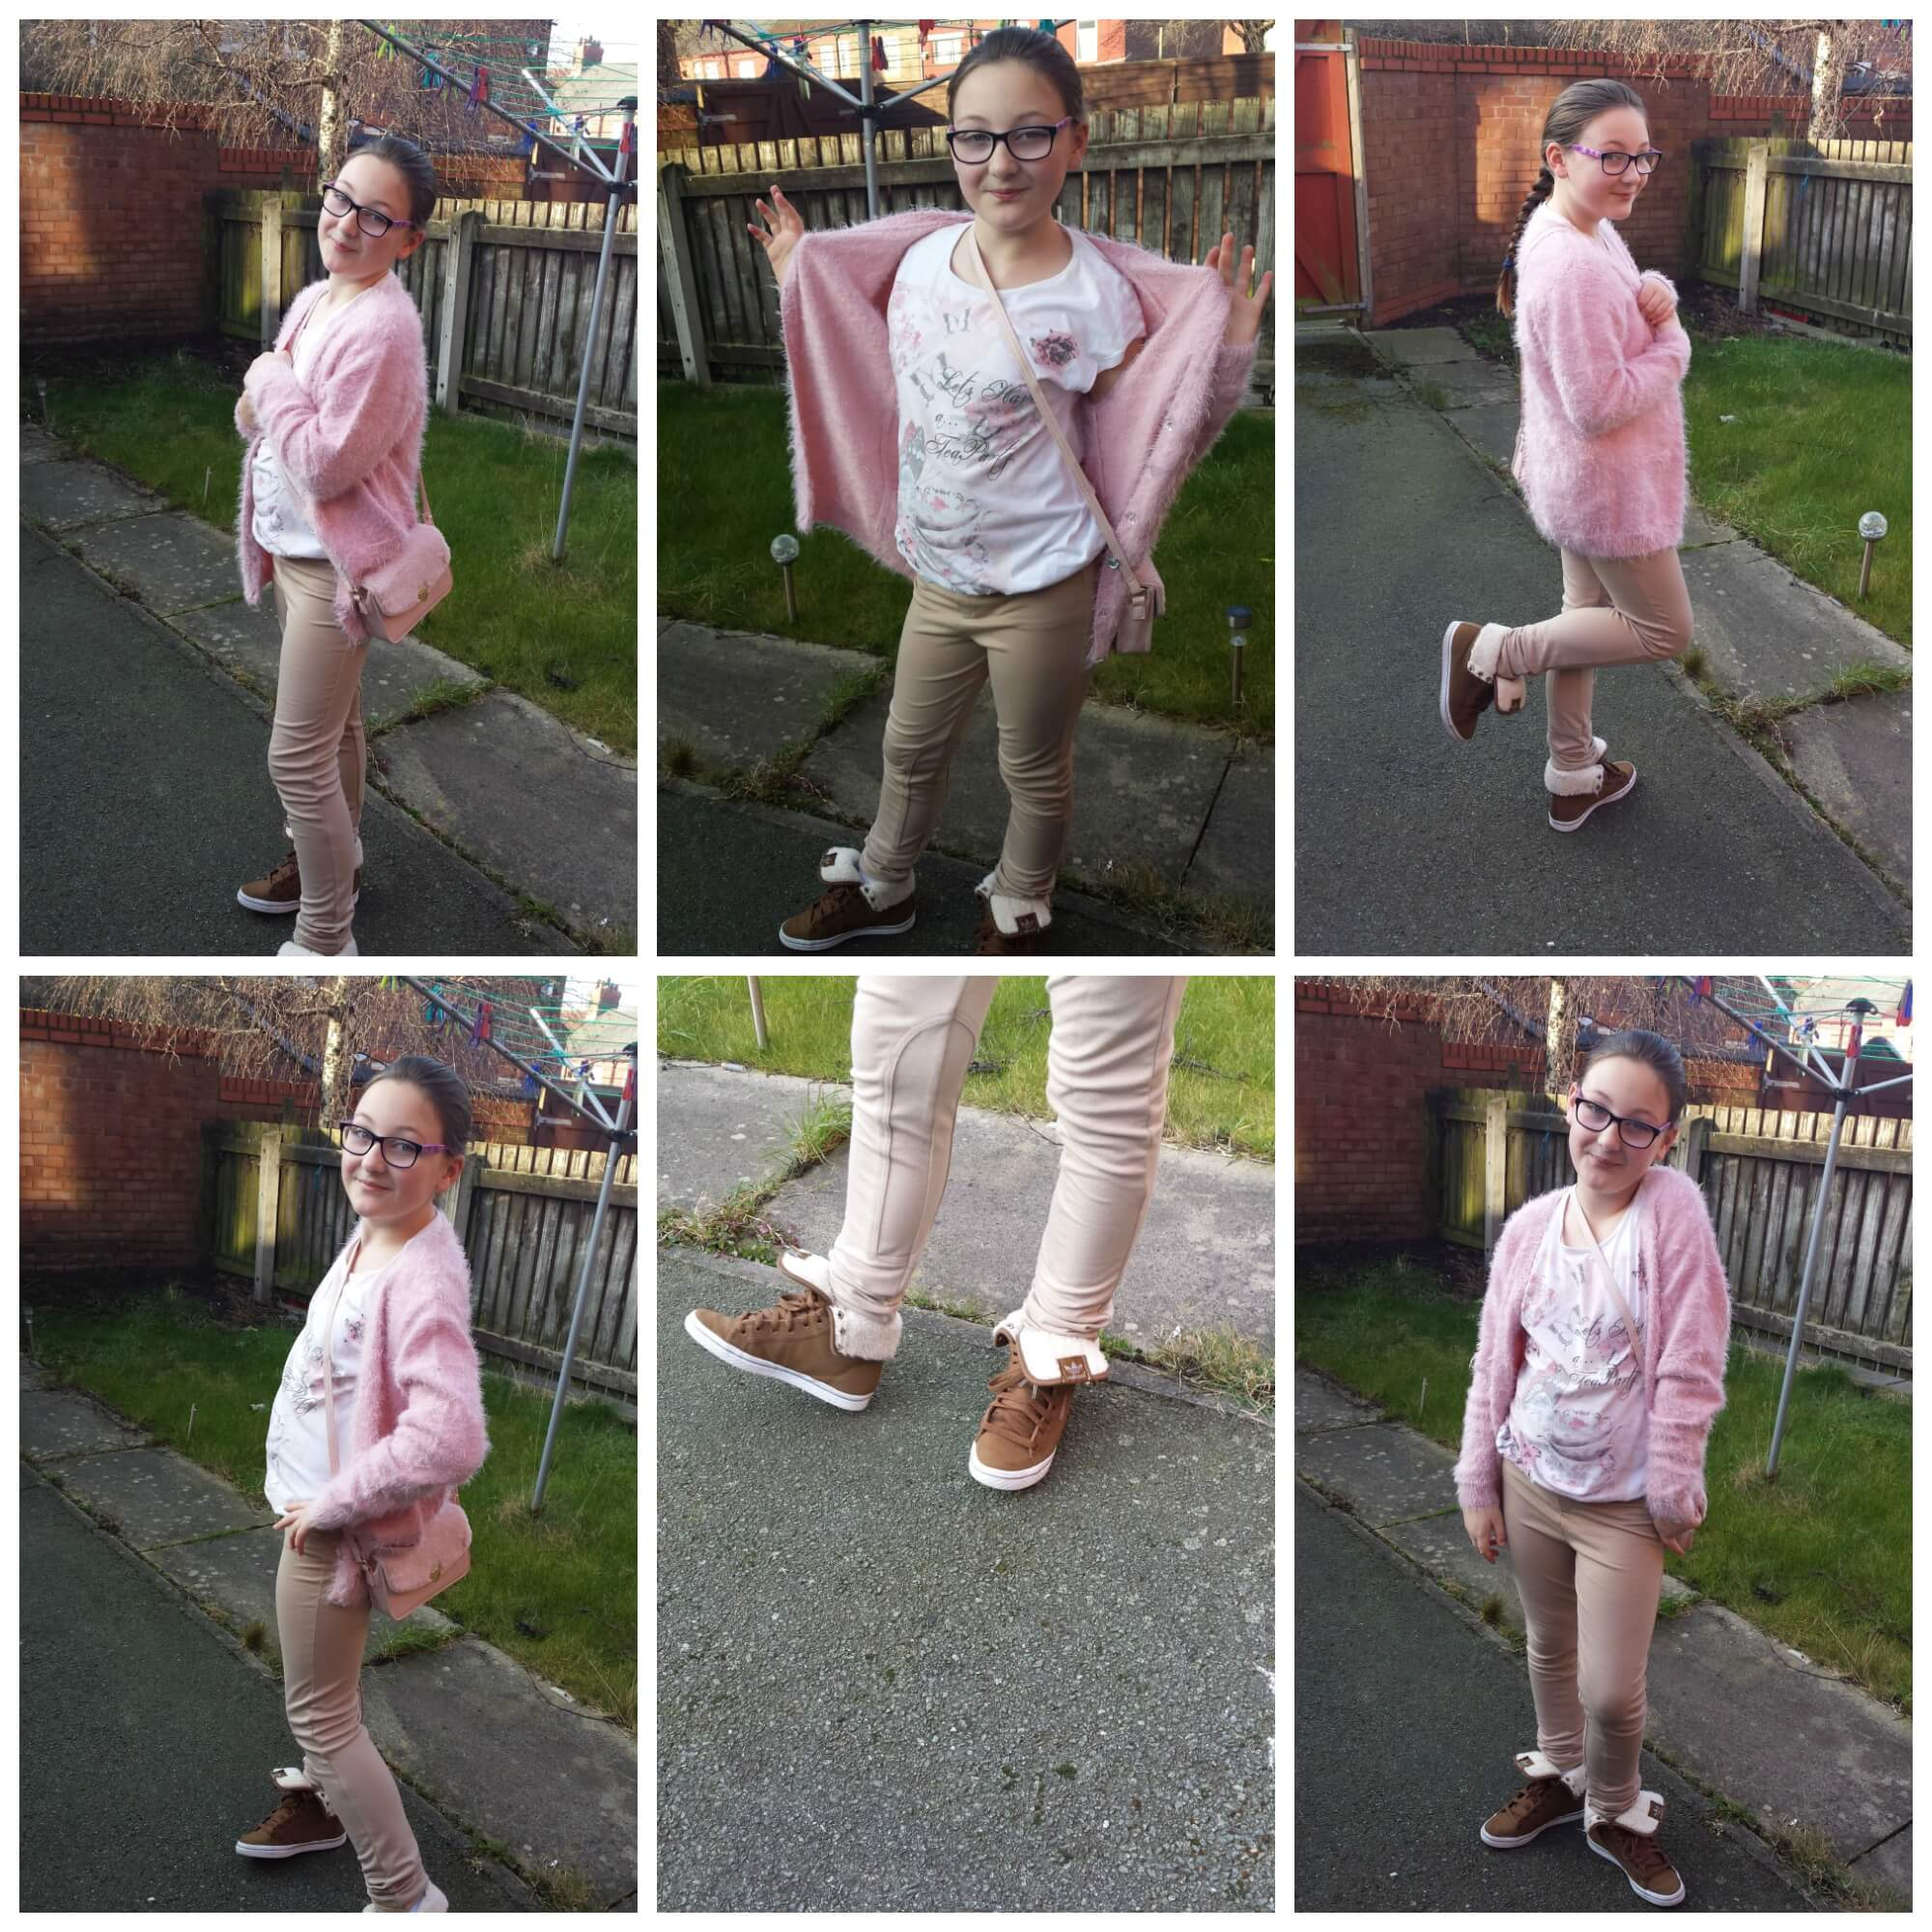 non -uniform day olivias outfit of choice